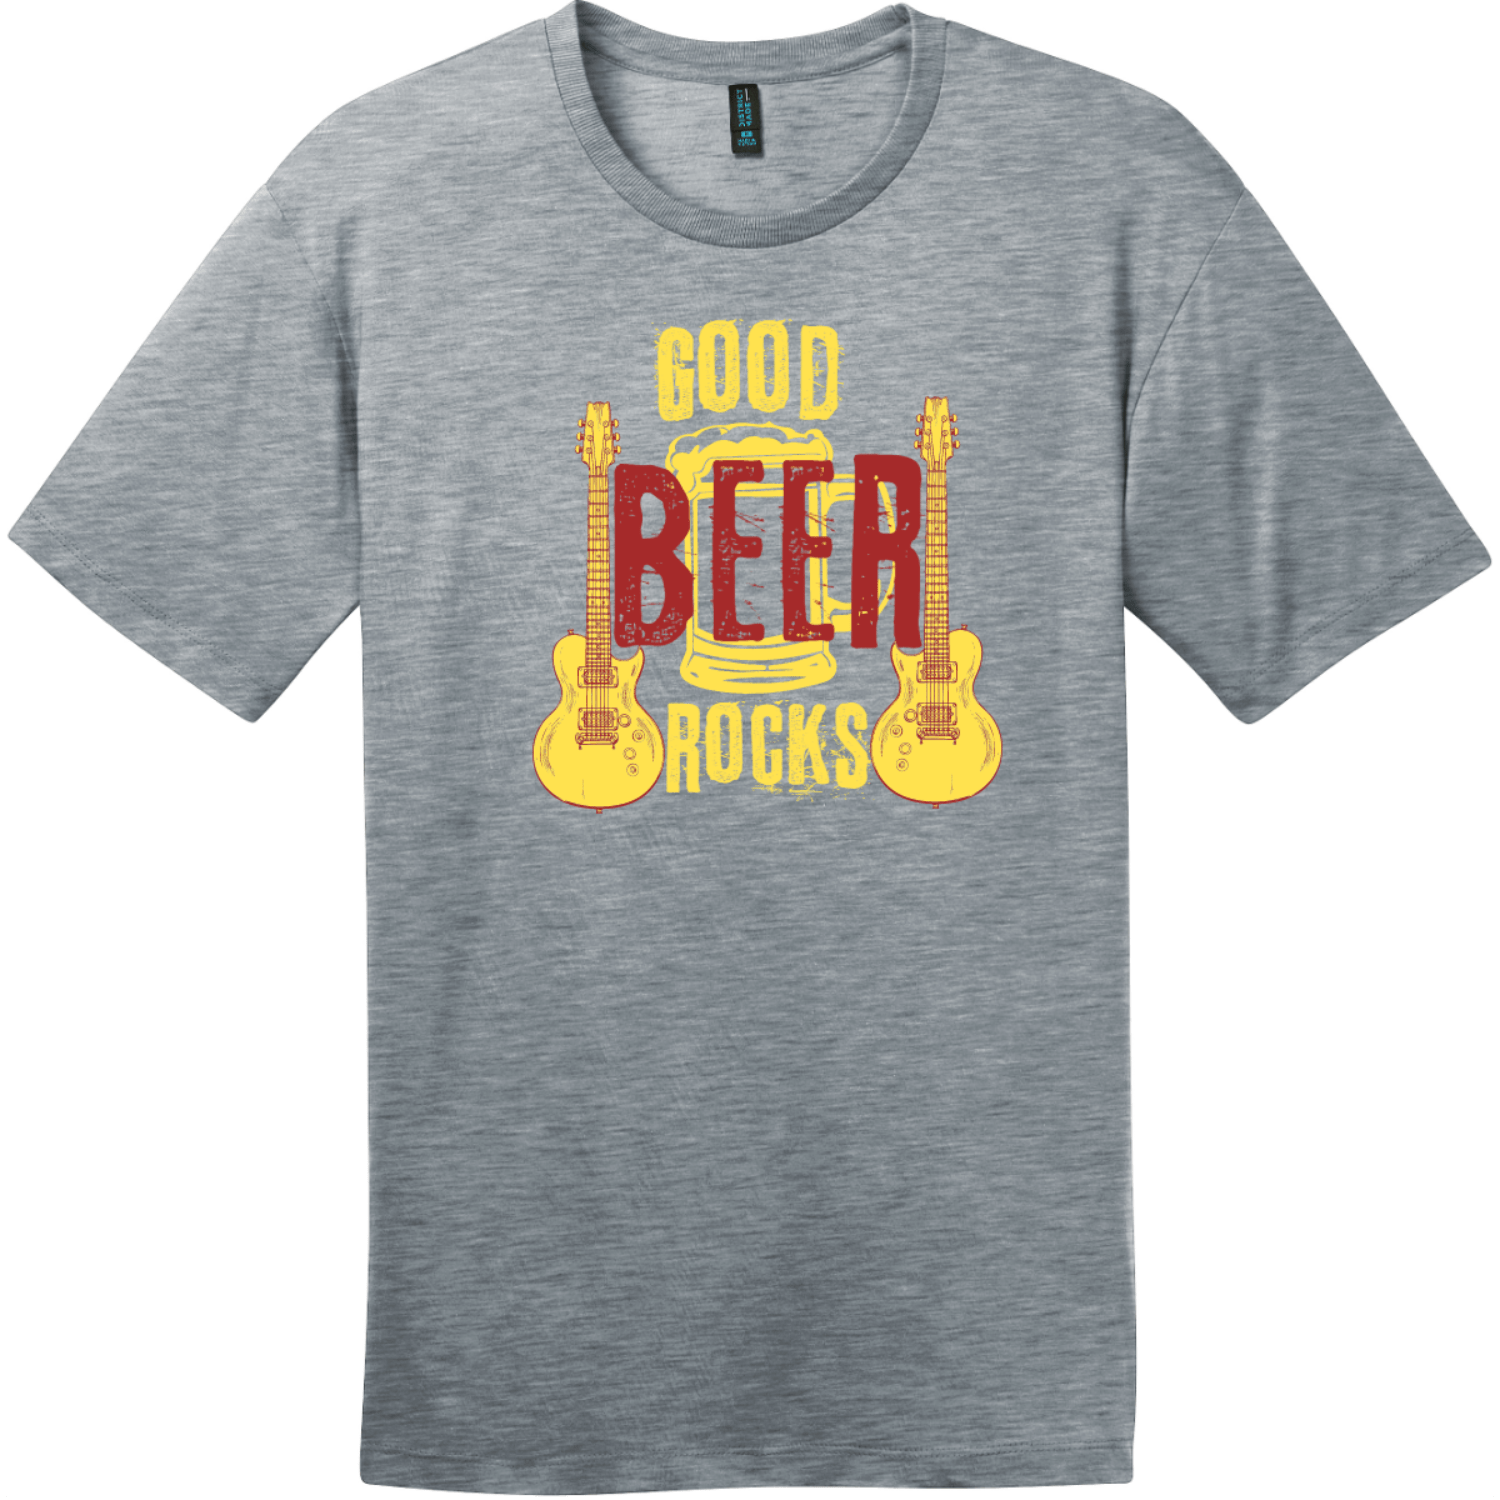 Good Beer Rocks Guitar T-Shirt Heathered Steel District Perfect Weight Tee DT104